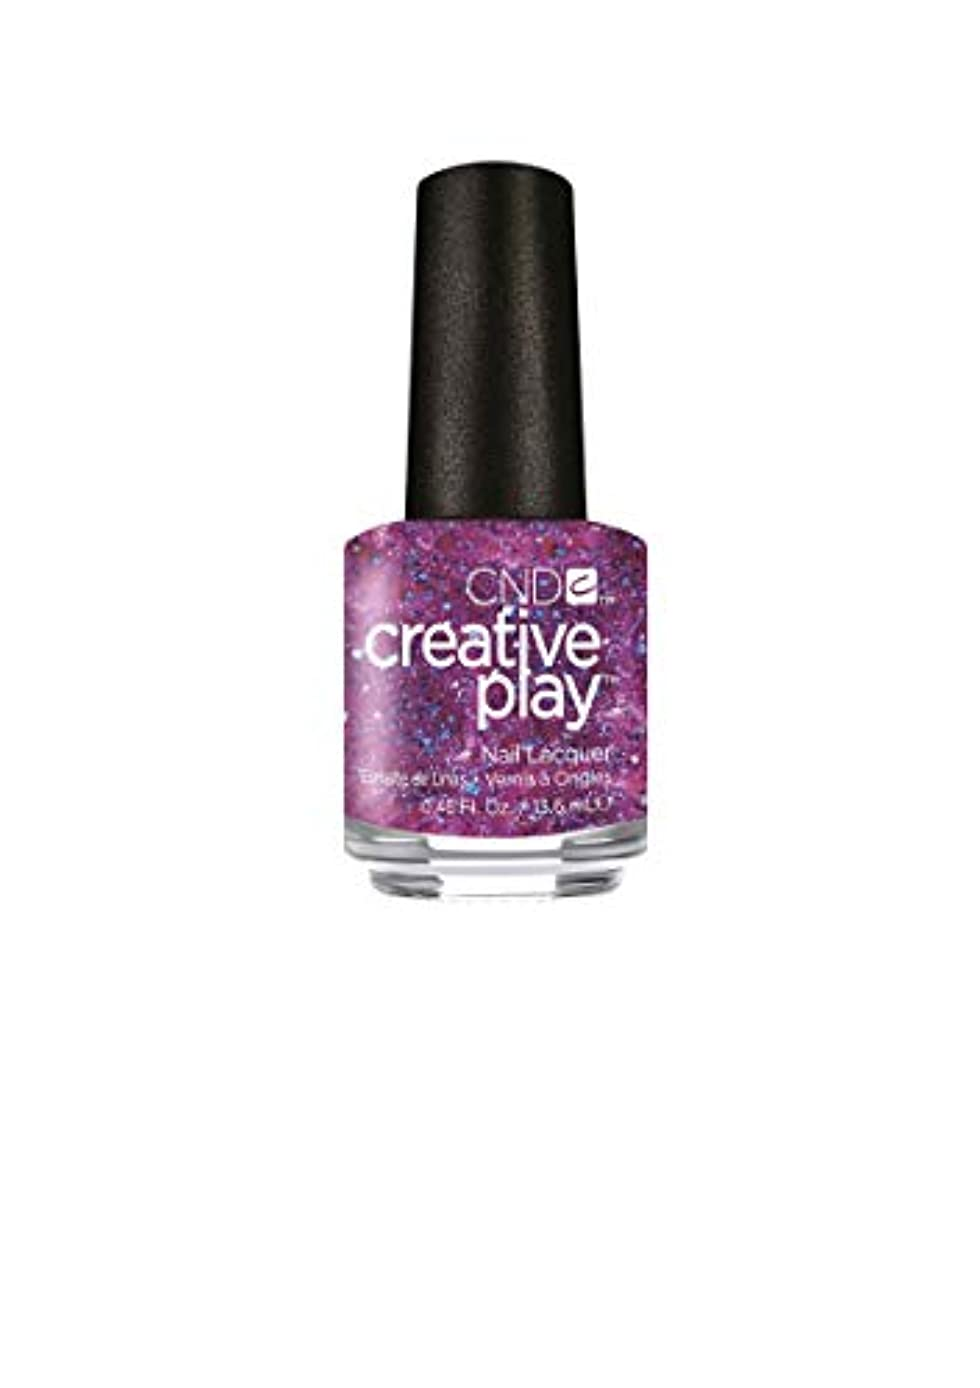 CND Creative Play Lacquer - Positively Plumsy - 0.46oz / 13.6ml